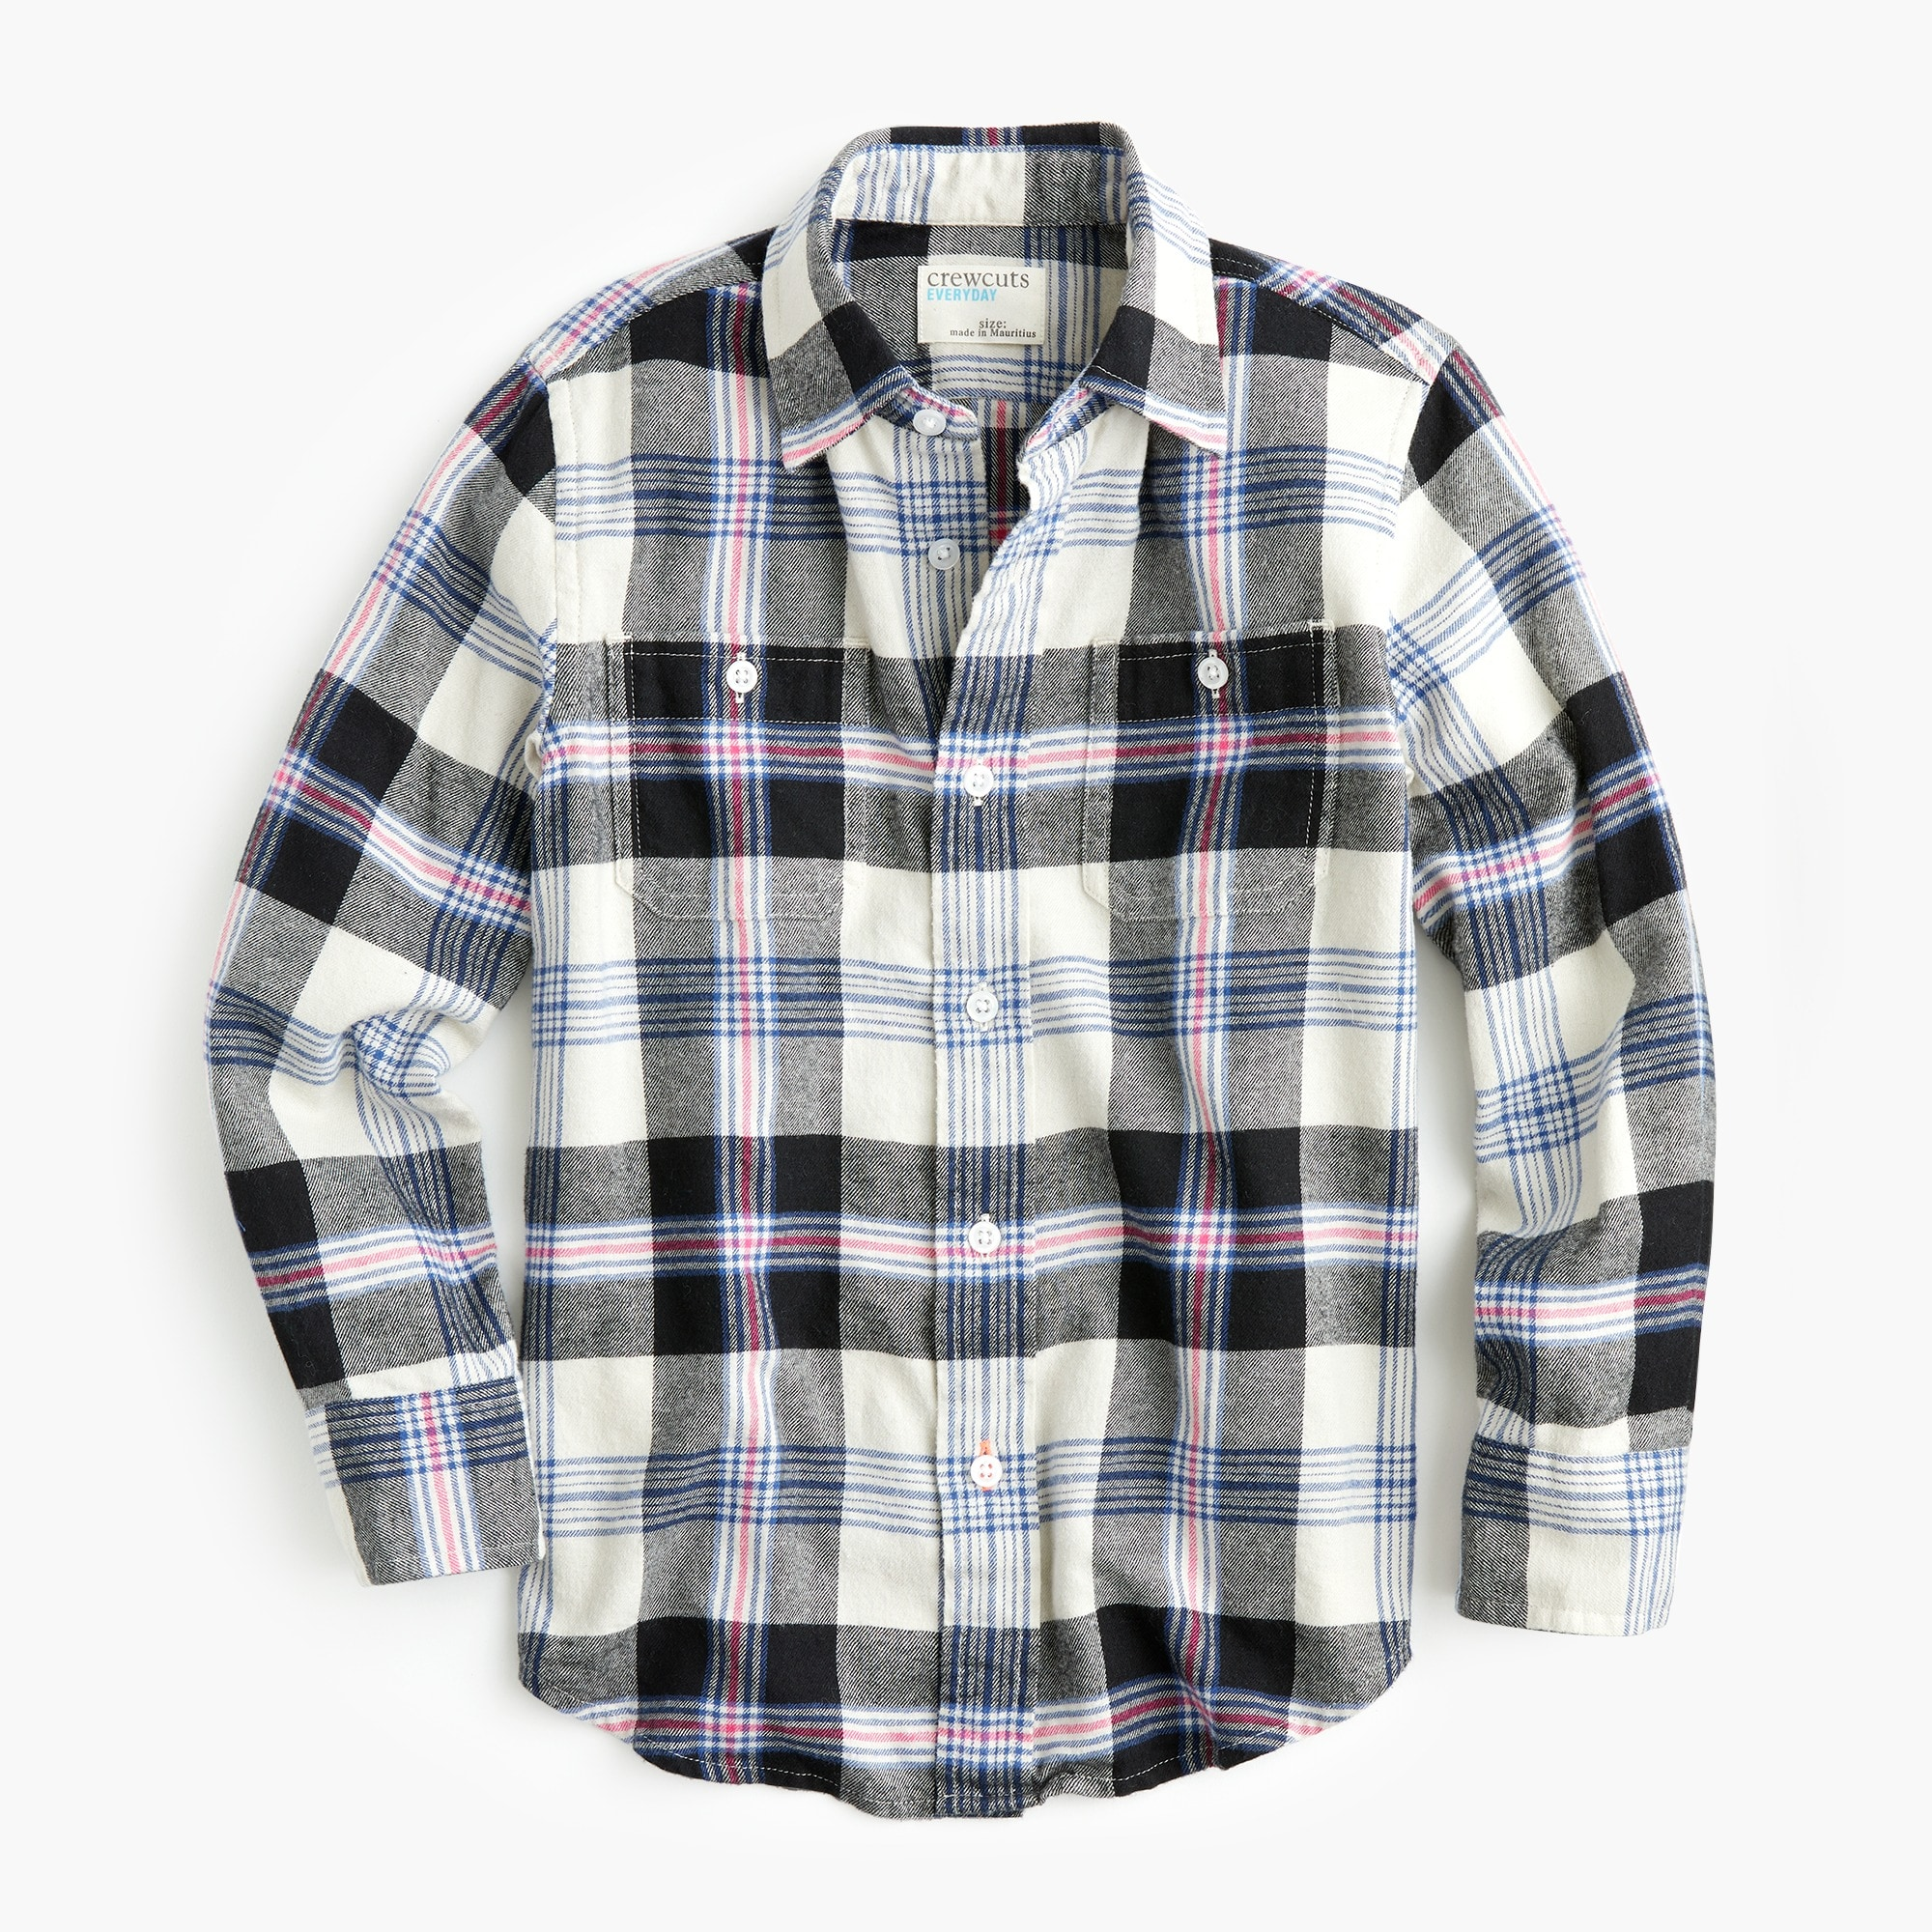 boys Boys' lightweight flannel shirt in gray plaid